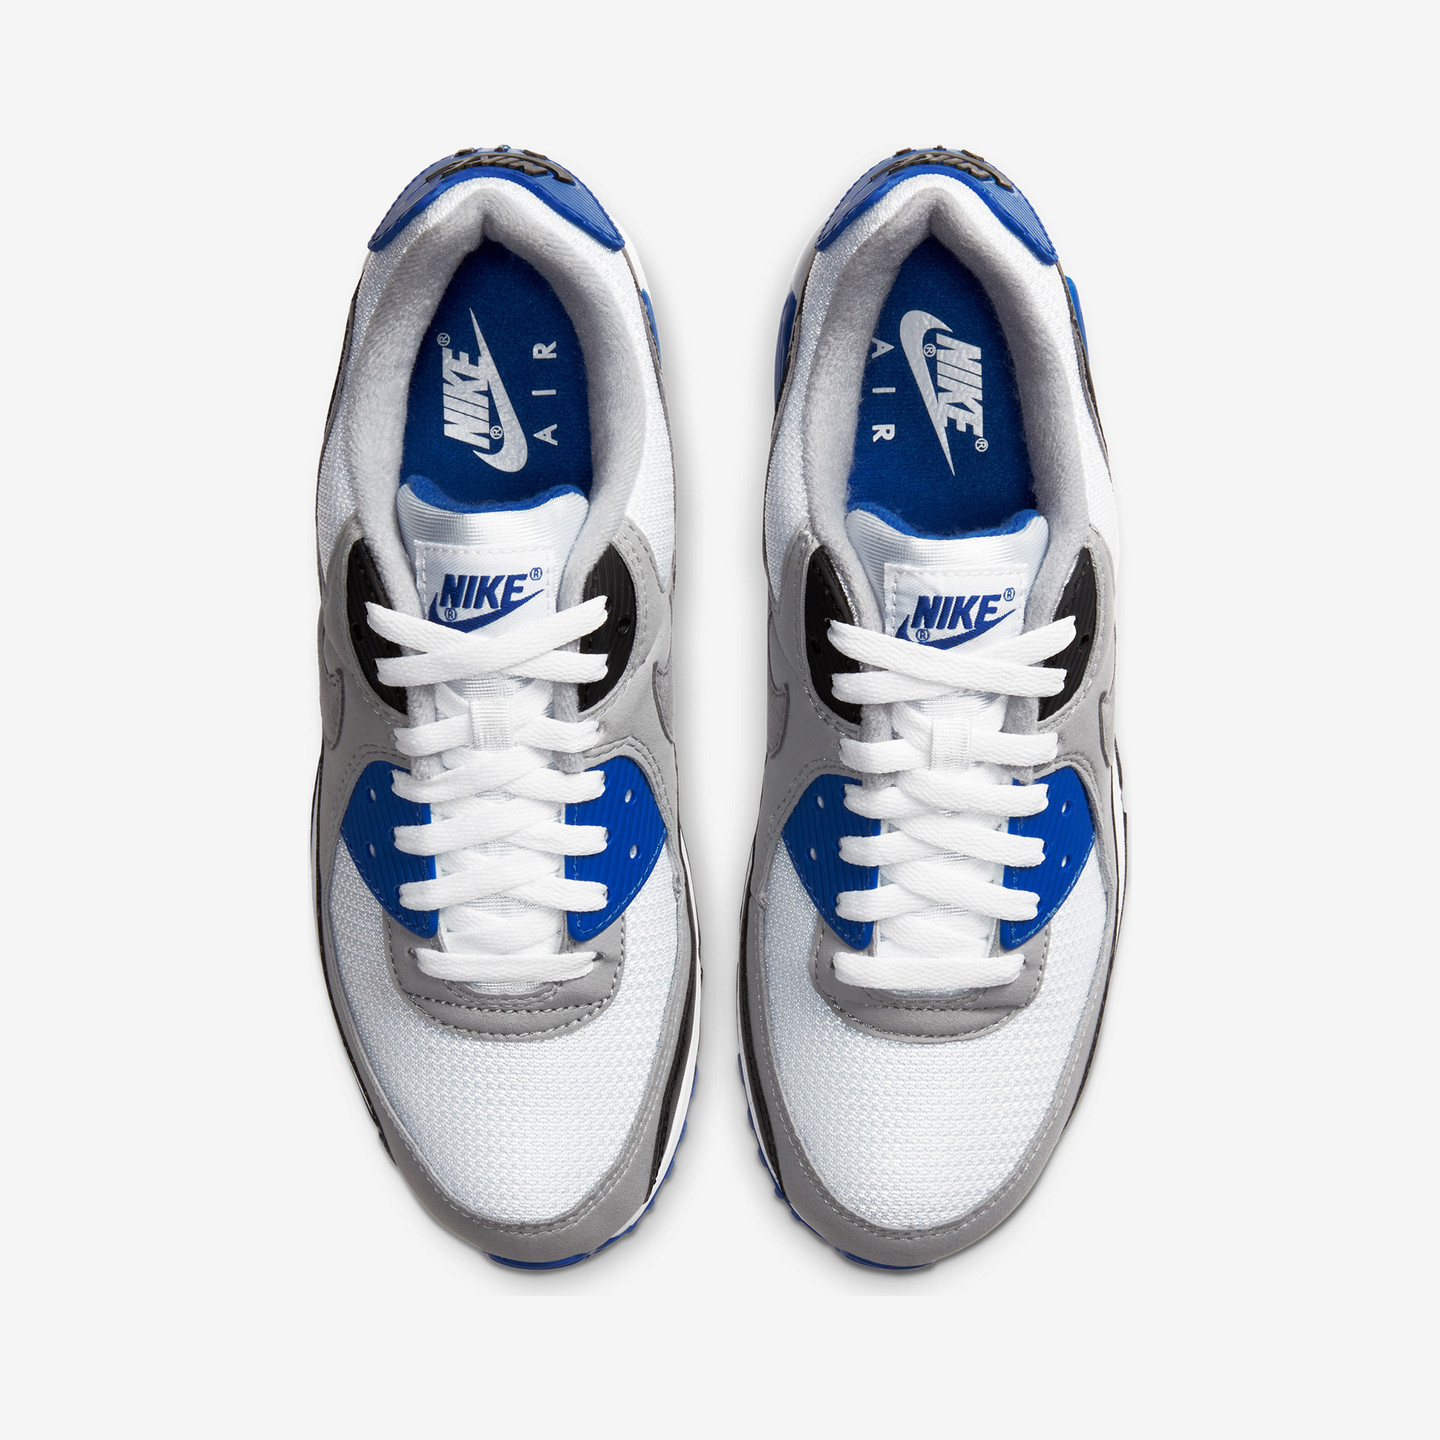 Nike Air Max 90 OG 'Hyper Royal' White / Particle Grey / Hyper Royal / Black CD0881-102